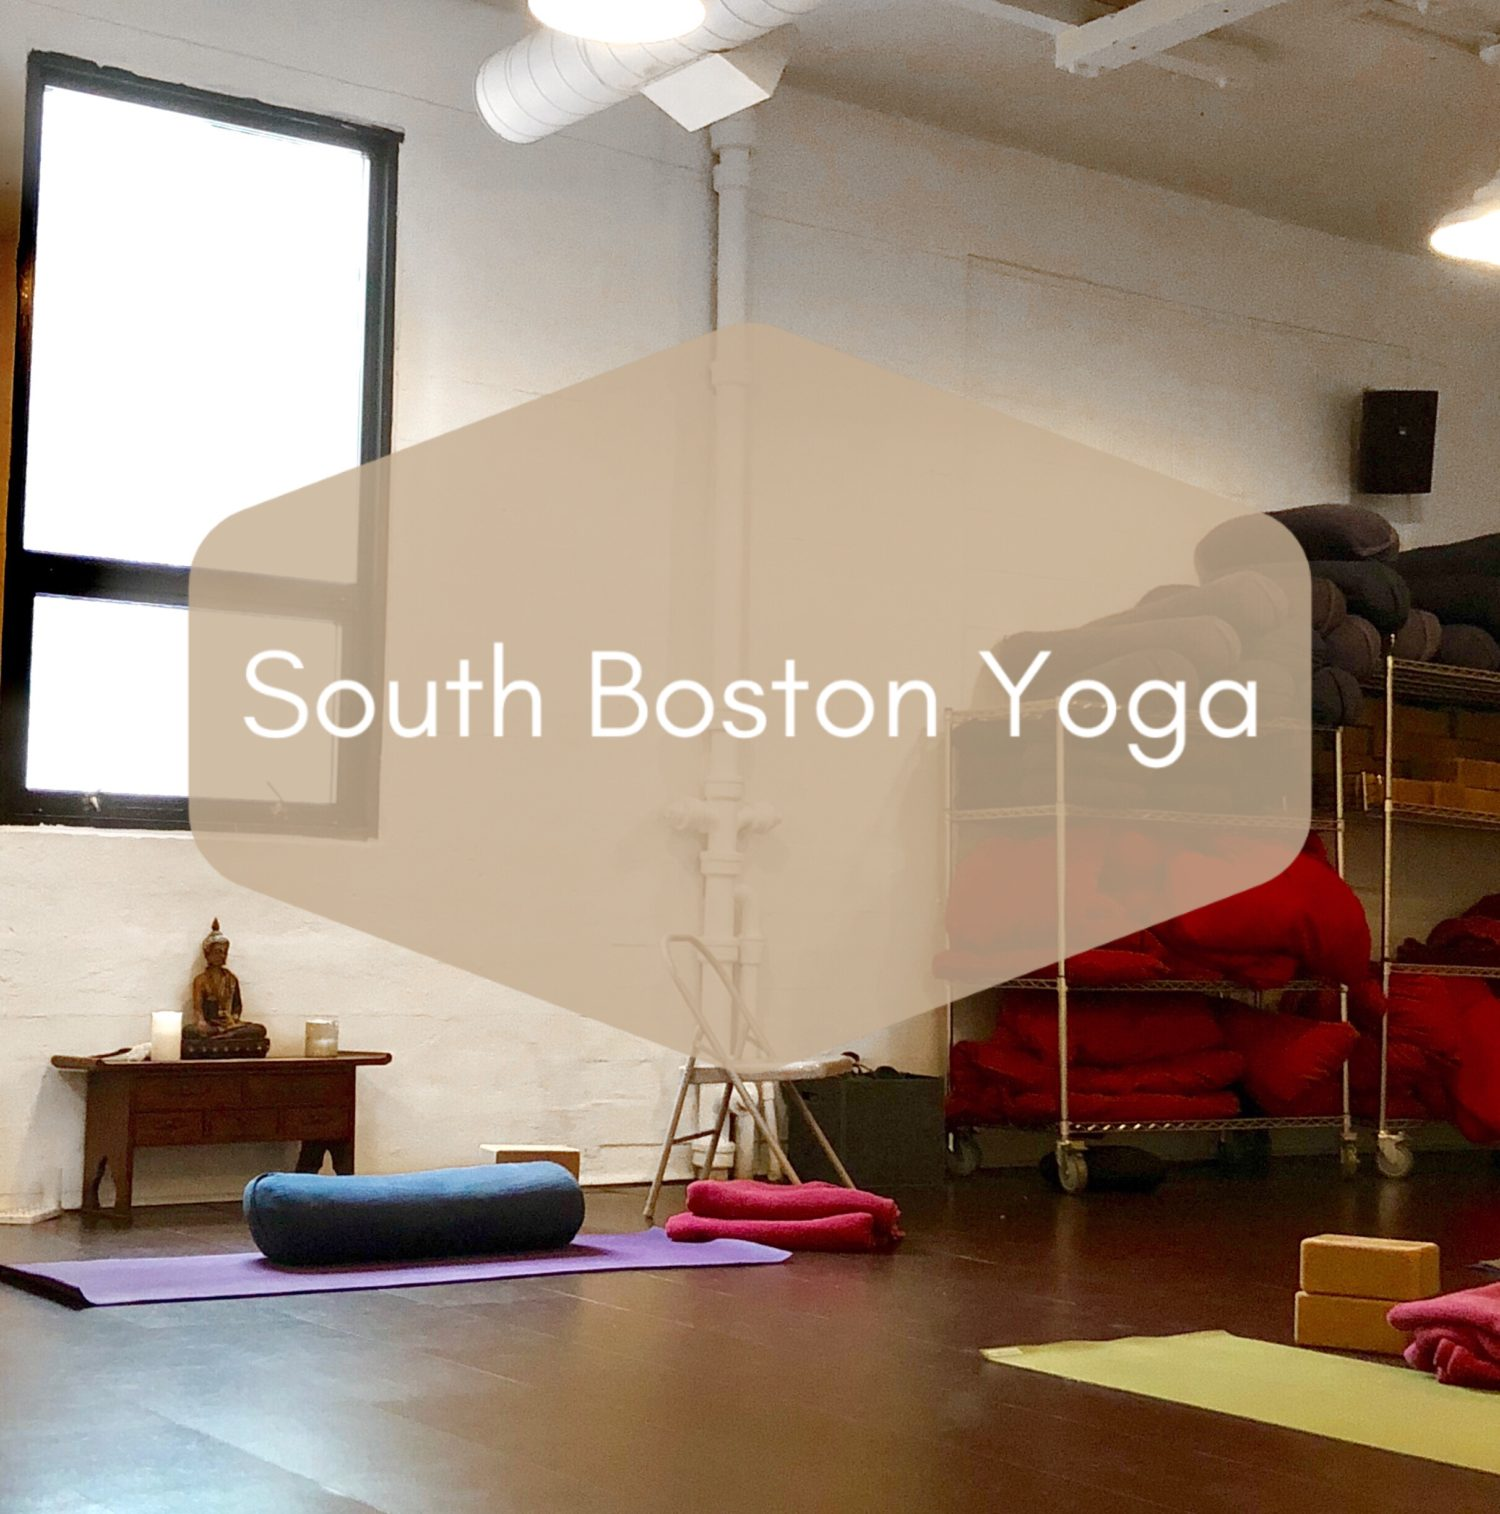 South Boston Yoga Offers Classes and Training in the Heart of Southie